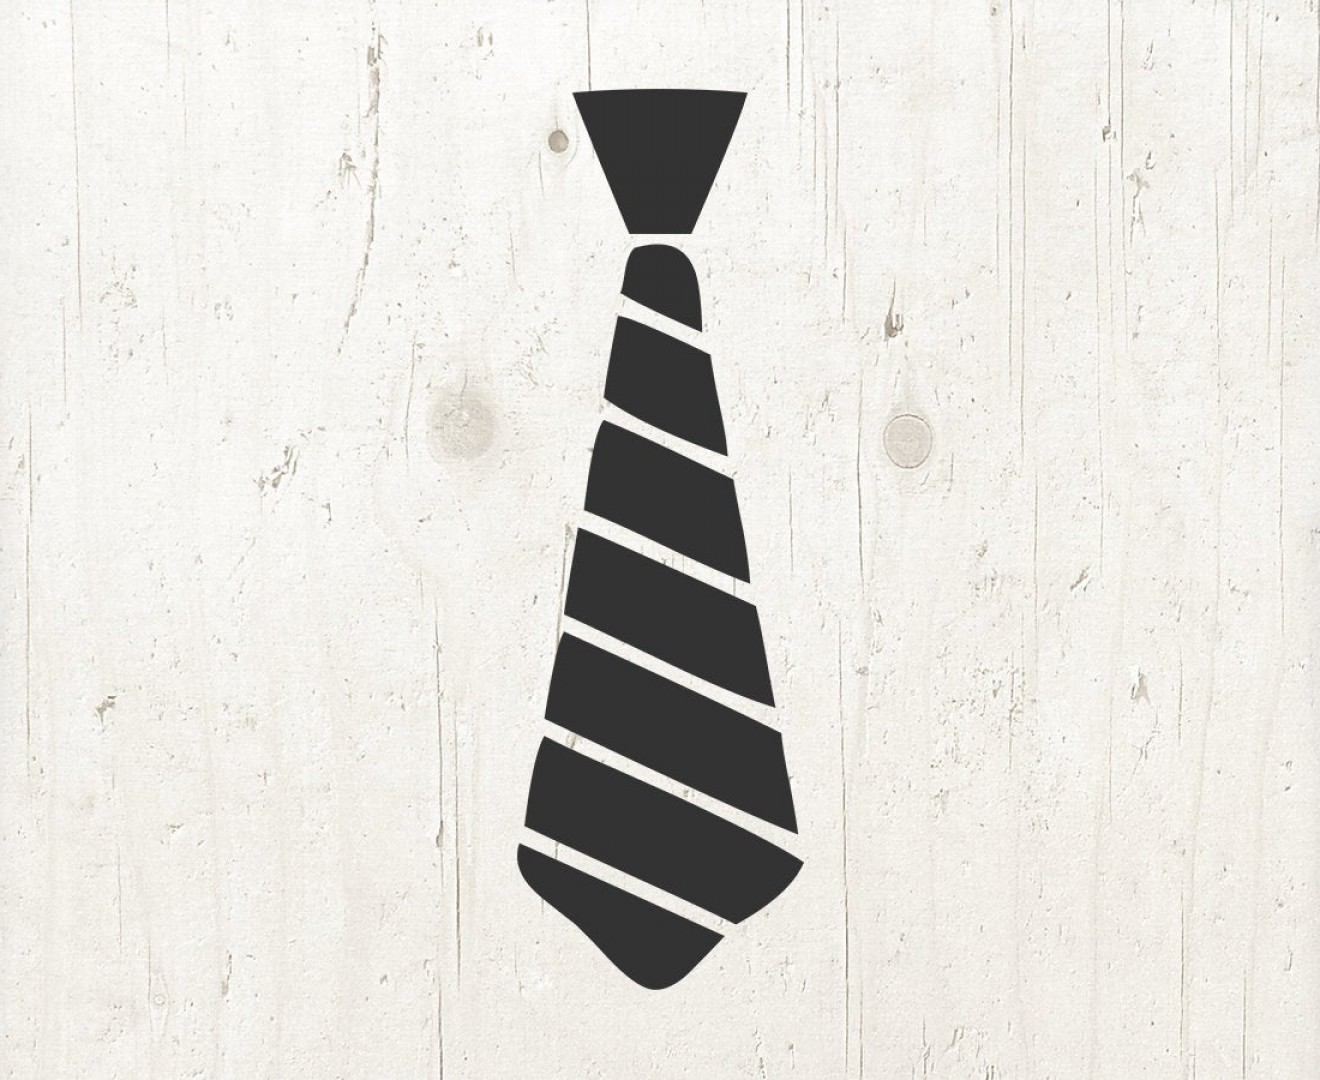 Fathers day ties black and white clipart image black and white library Tie Svg Tie Clipart Fathers Day Svg Dad | CQRecords image black and white library